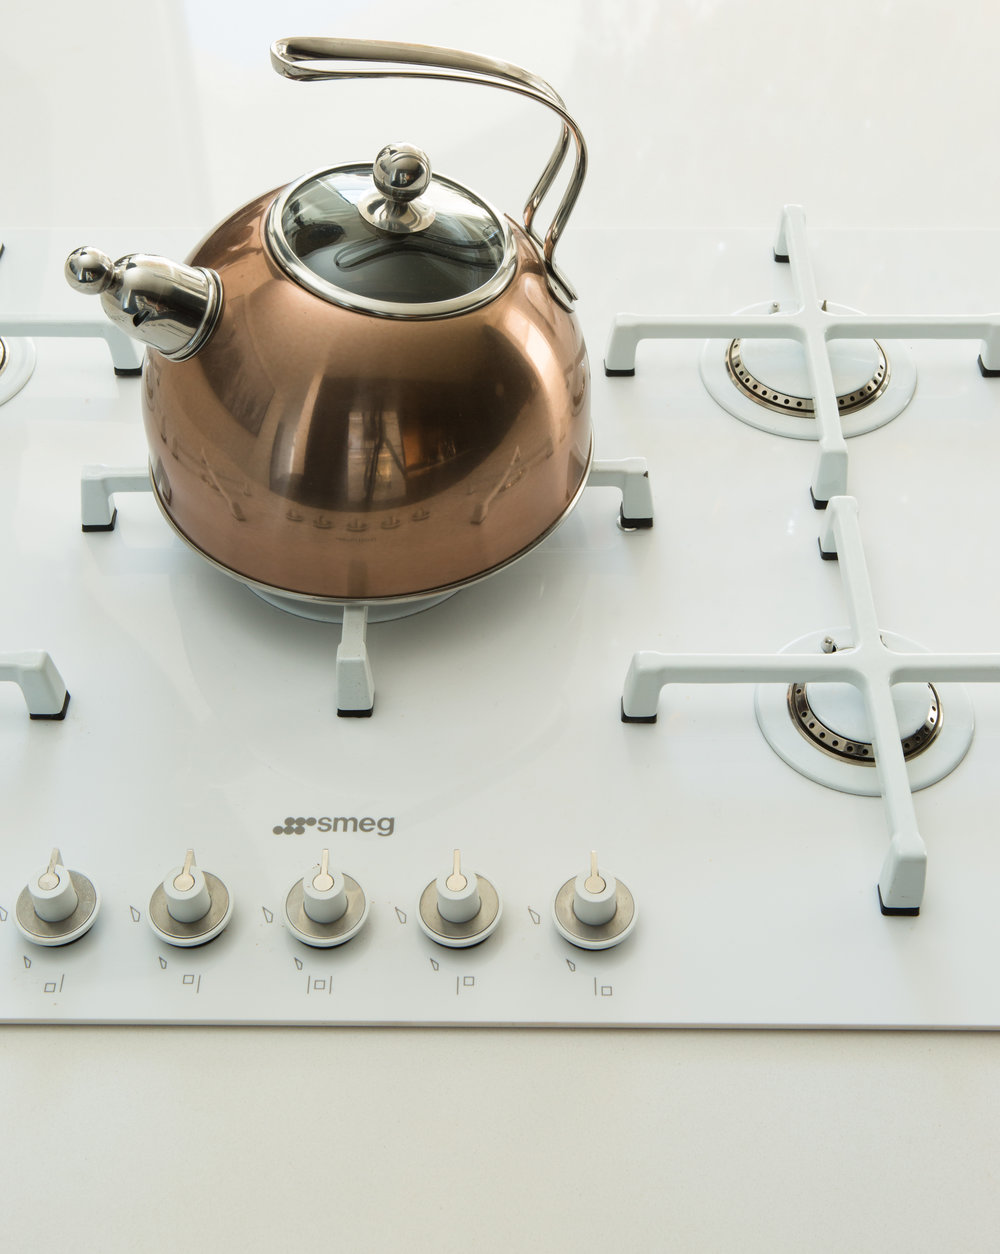 Linear range by SMEG and copper kettle